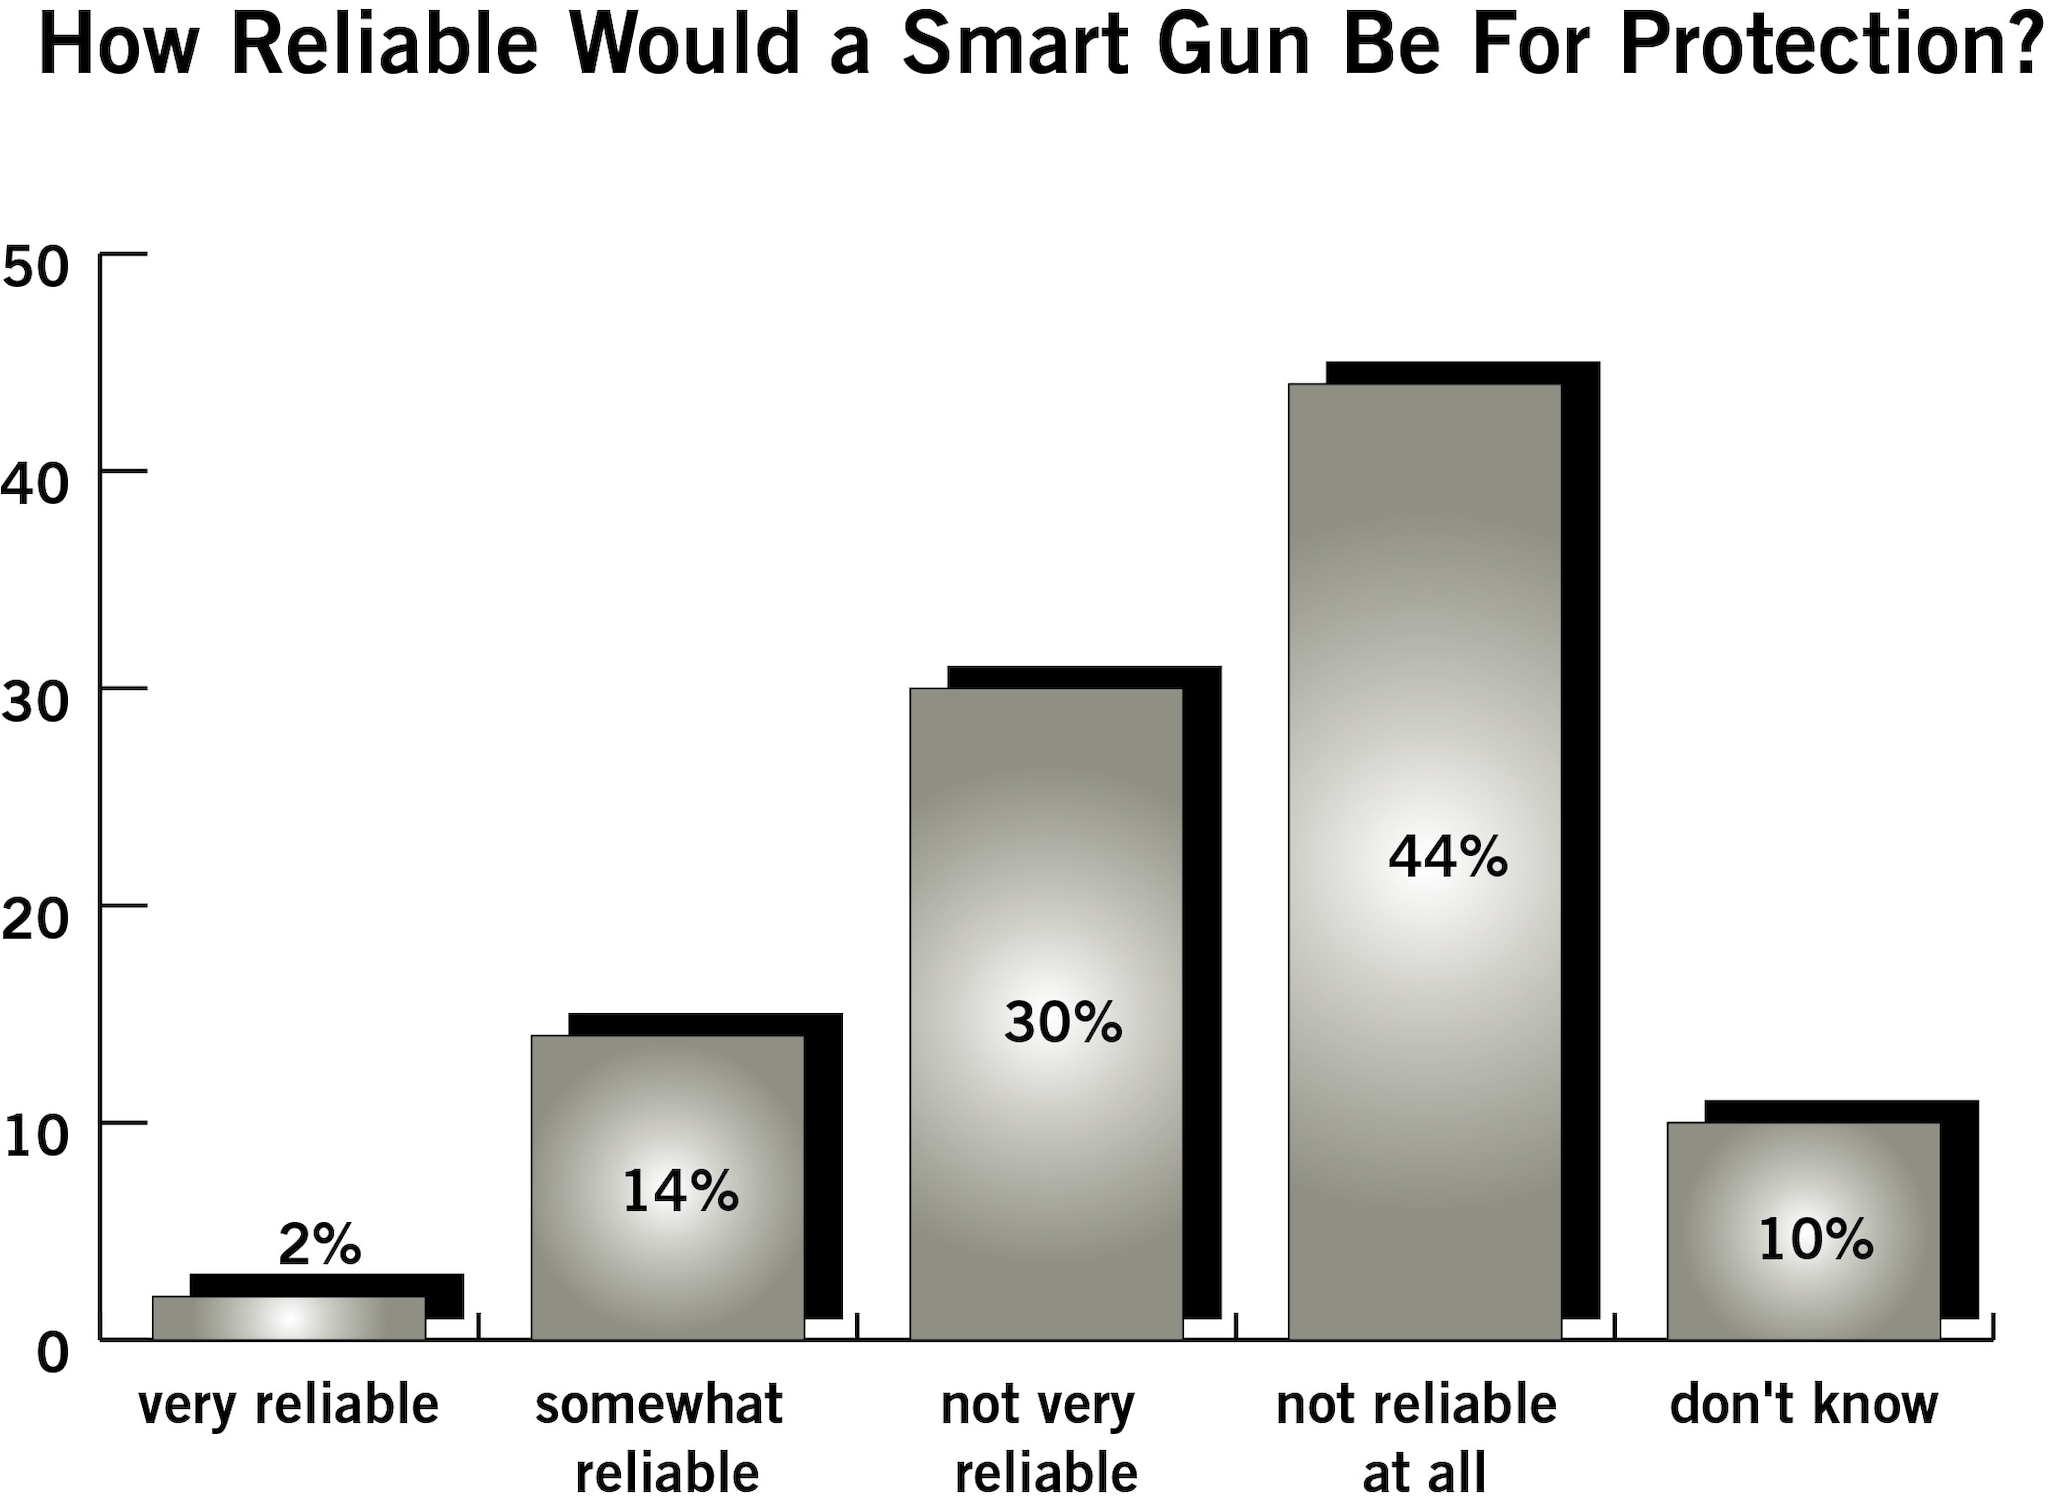 A recent poll conducted for the National Shooting Sports Foundation found that the concept of a 'smart gun' is not popular (Photo credit; NSSF)